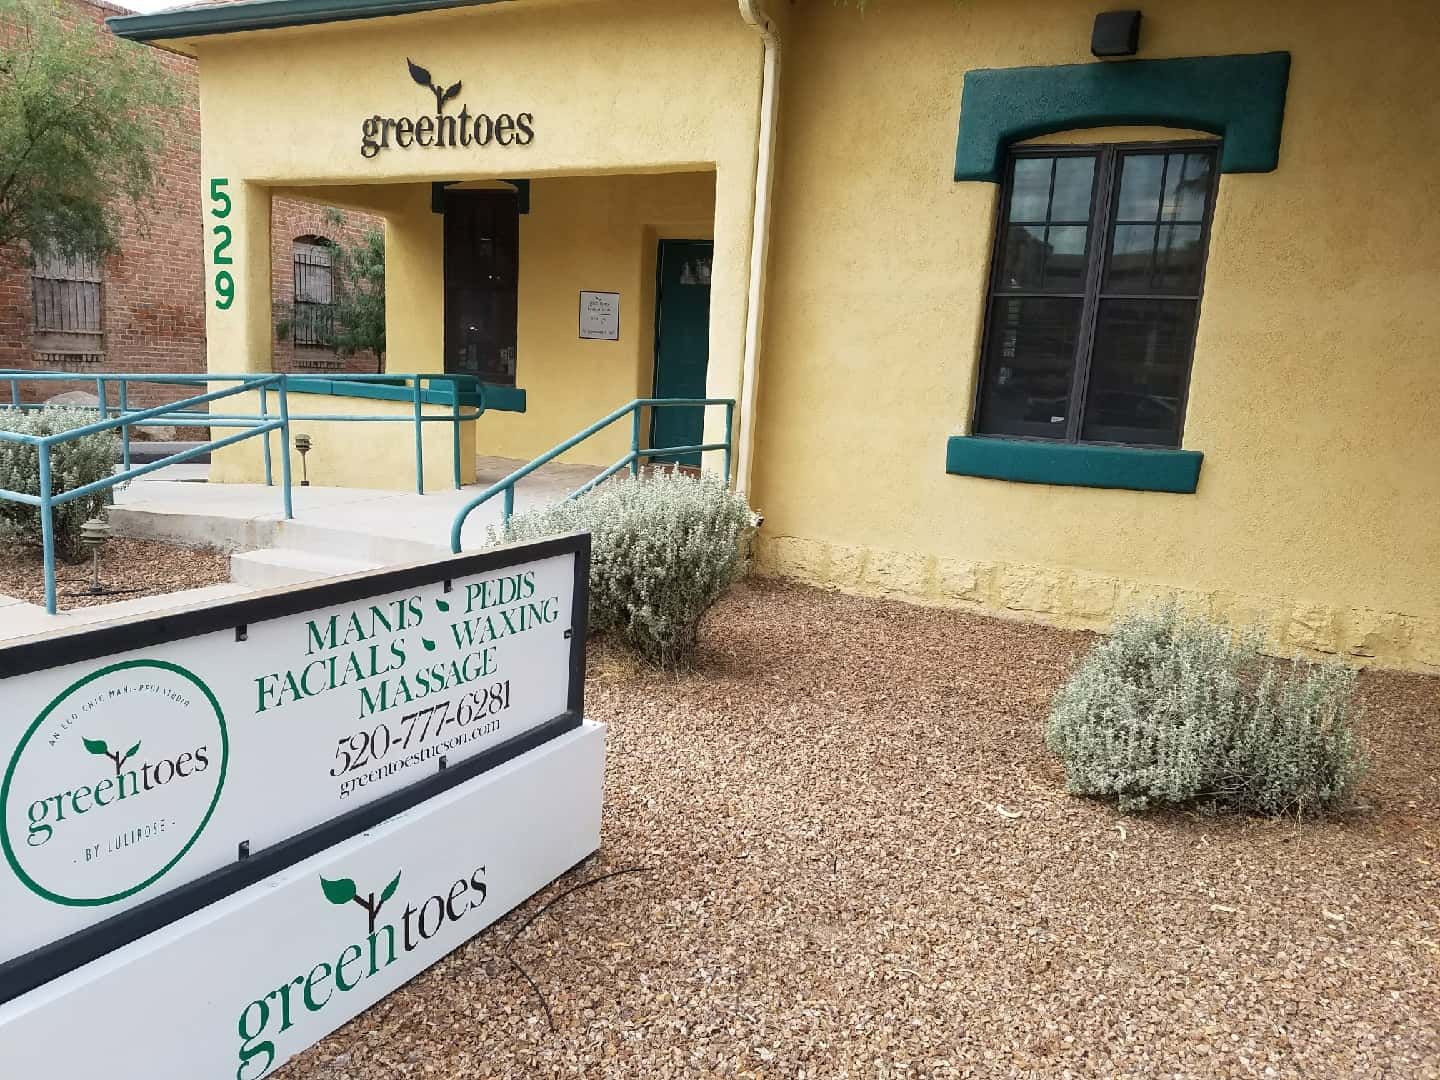 Greentoes: Mani Pedi Studio, Tucson Day Spa, Nail Salon, Massage